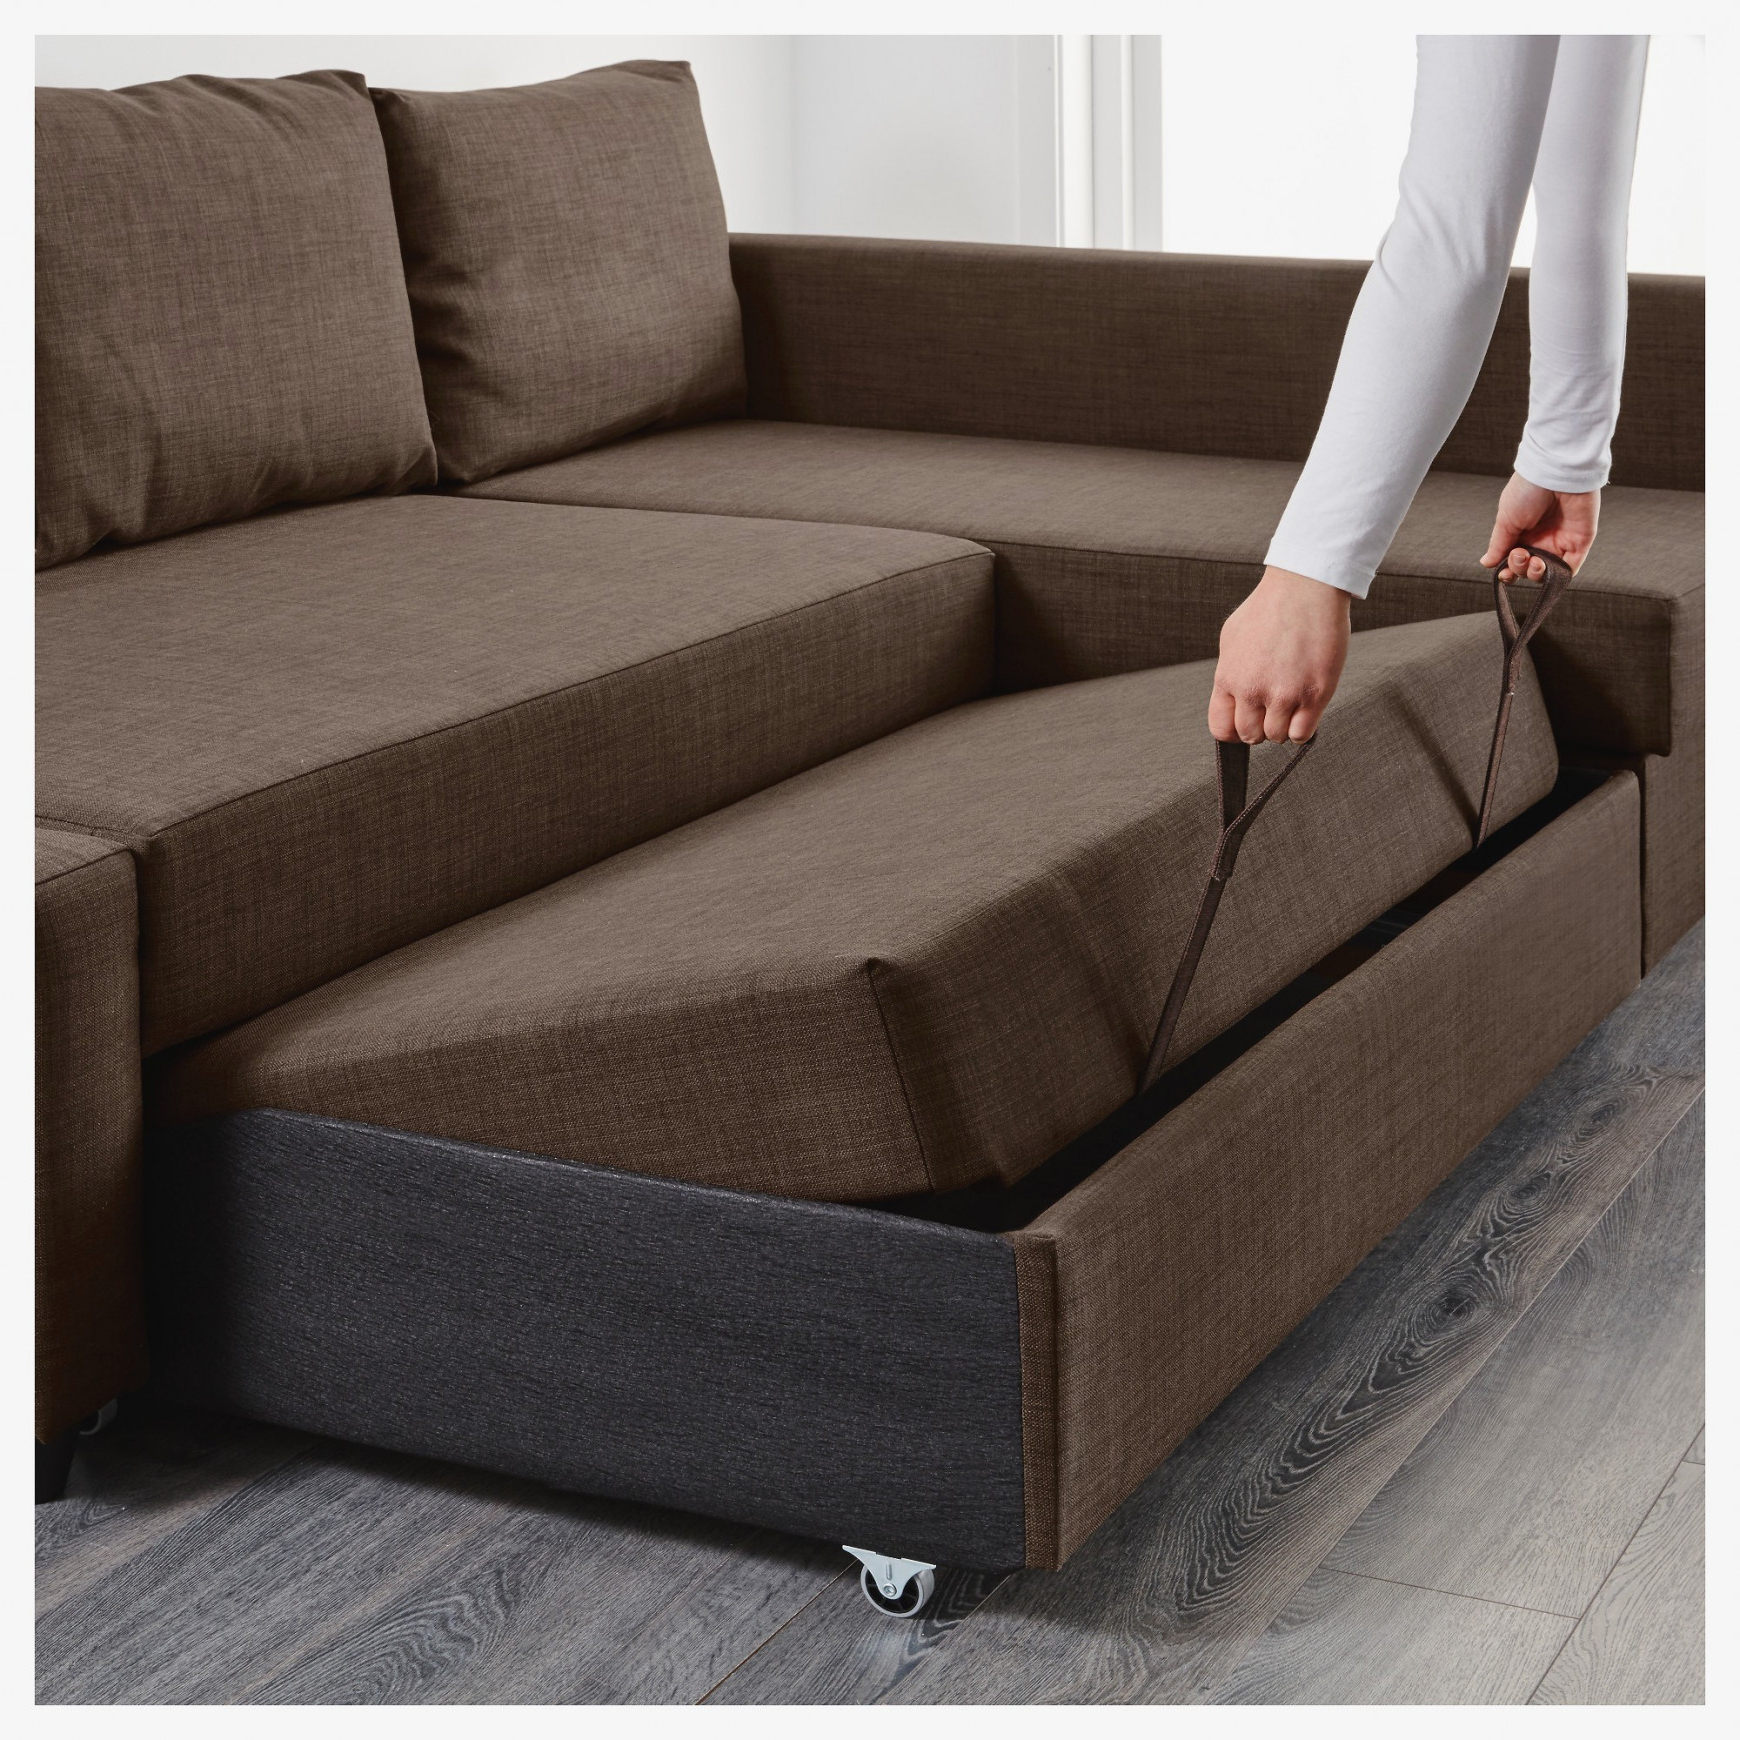 Well Known Nice Storage Chaise Sofa Images Gallery # Storage Chaise Sofa Chaise With Regard To Taren Reversible Sofa/chaise Sleeper Sectionals With Storage Ottoman (View 20 of 20)